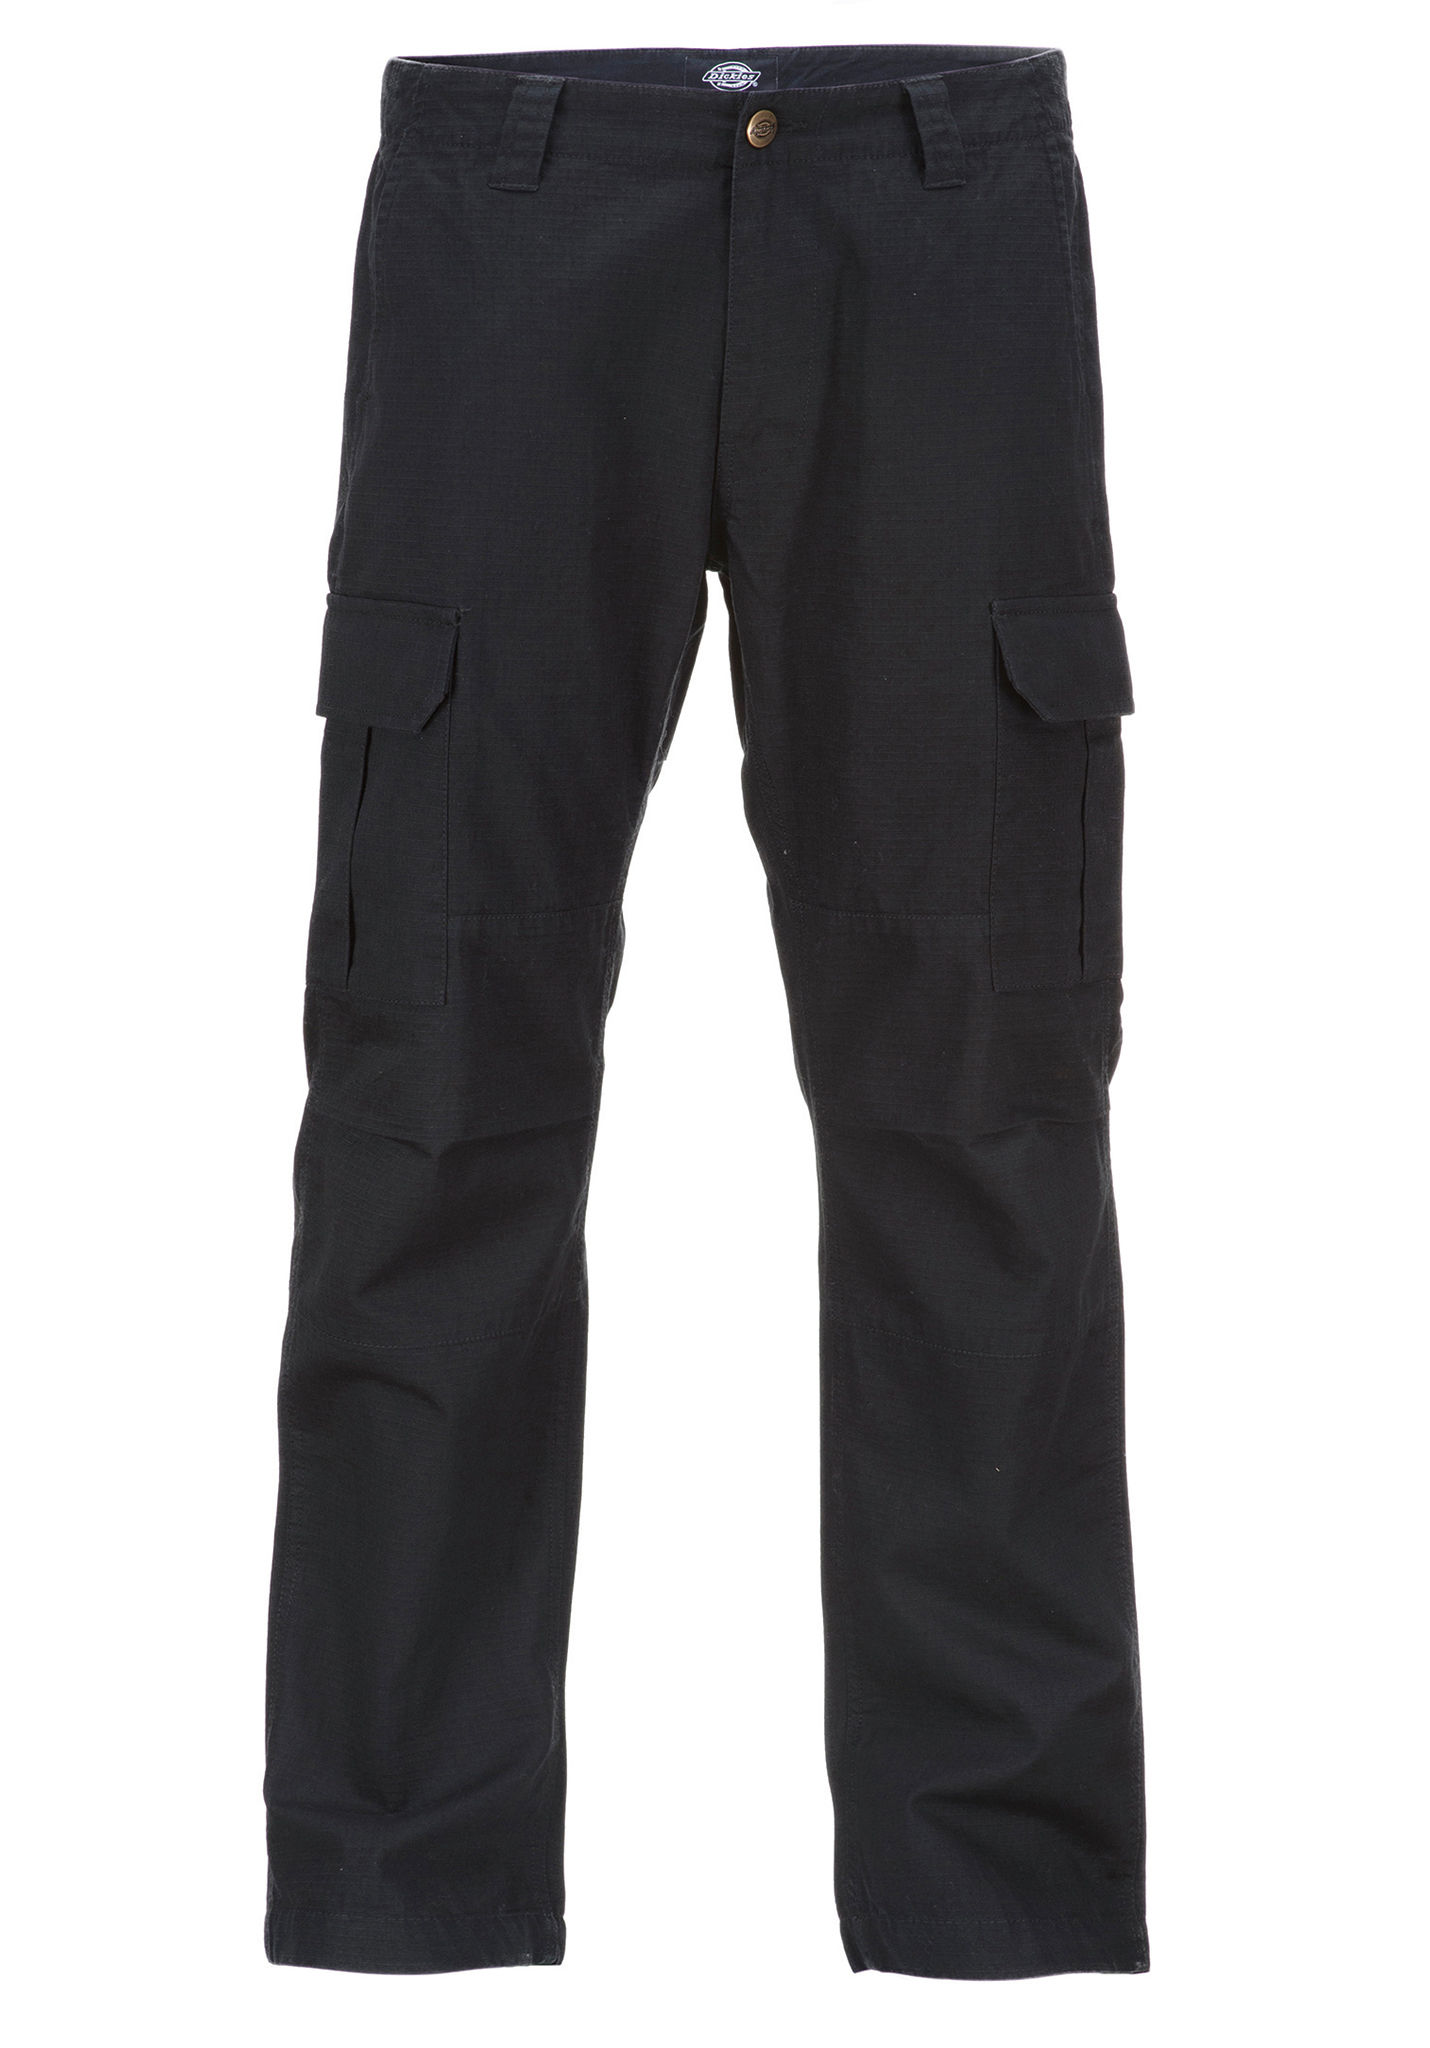 Official Site For Sale Mens Edwardsport Trousers Dickies 100% Authentic For Sale KpHOuR